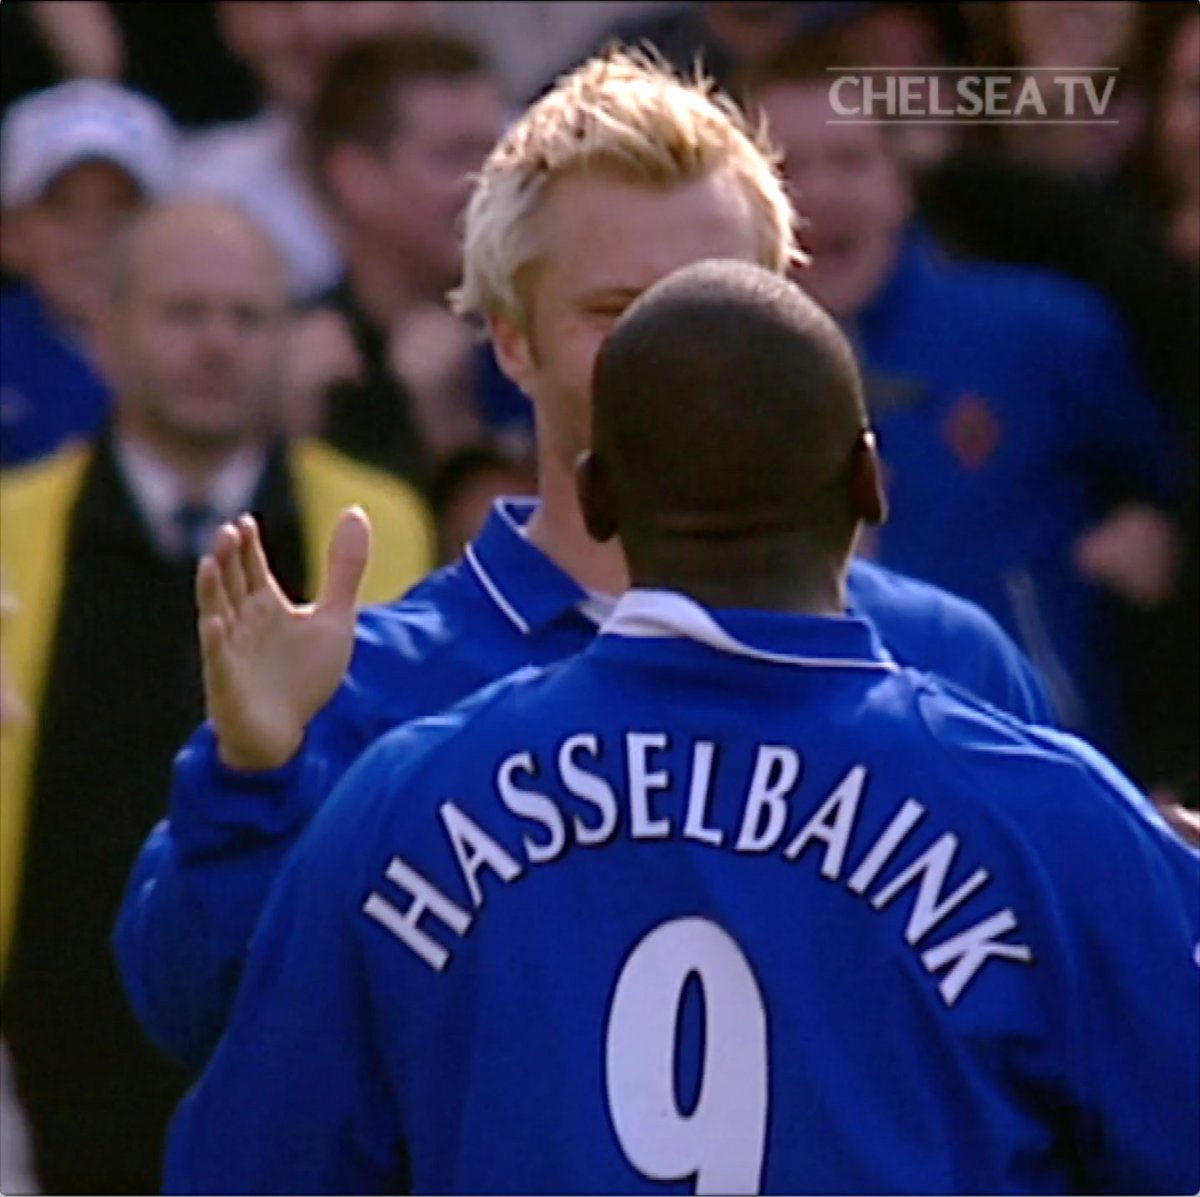 Everton up next for the Blues! How about this audacious chip by Jimmy Floyd Hasselbaink in 2002!! 👏 #FlashbackFriday